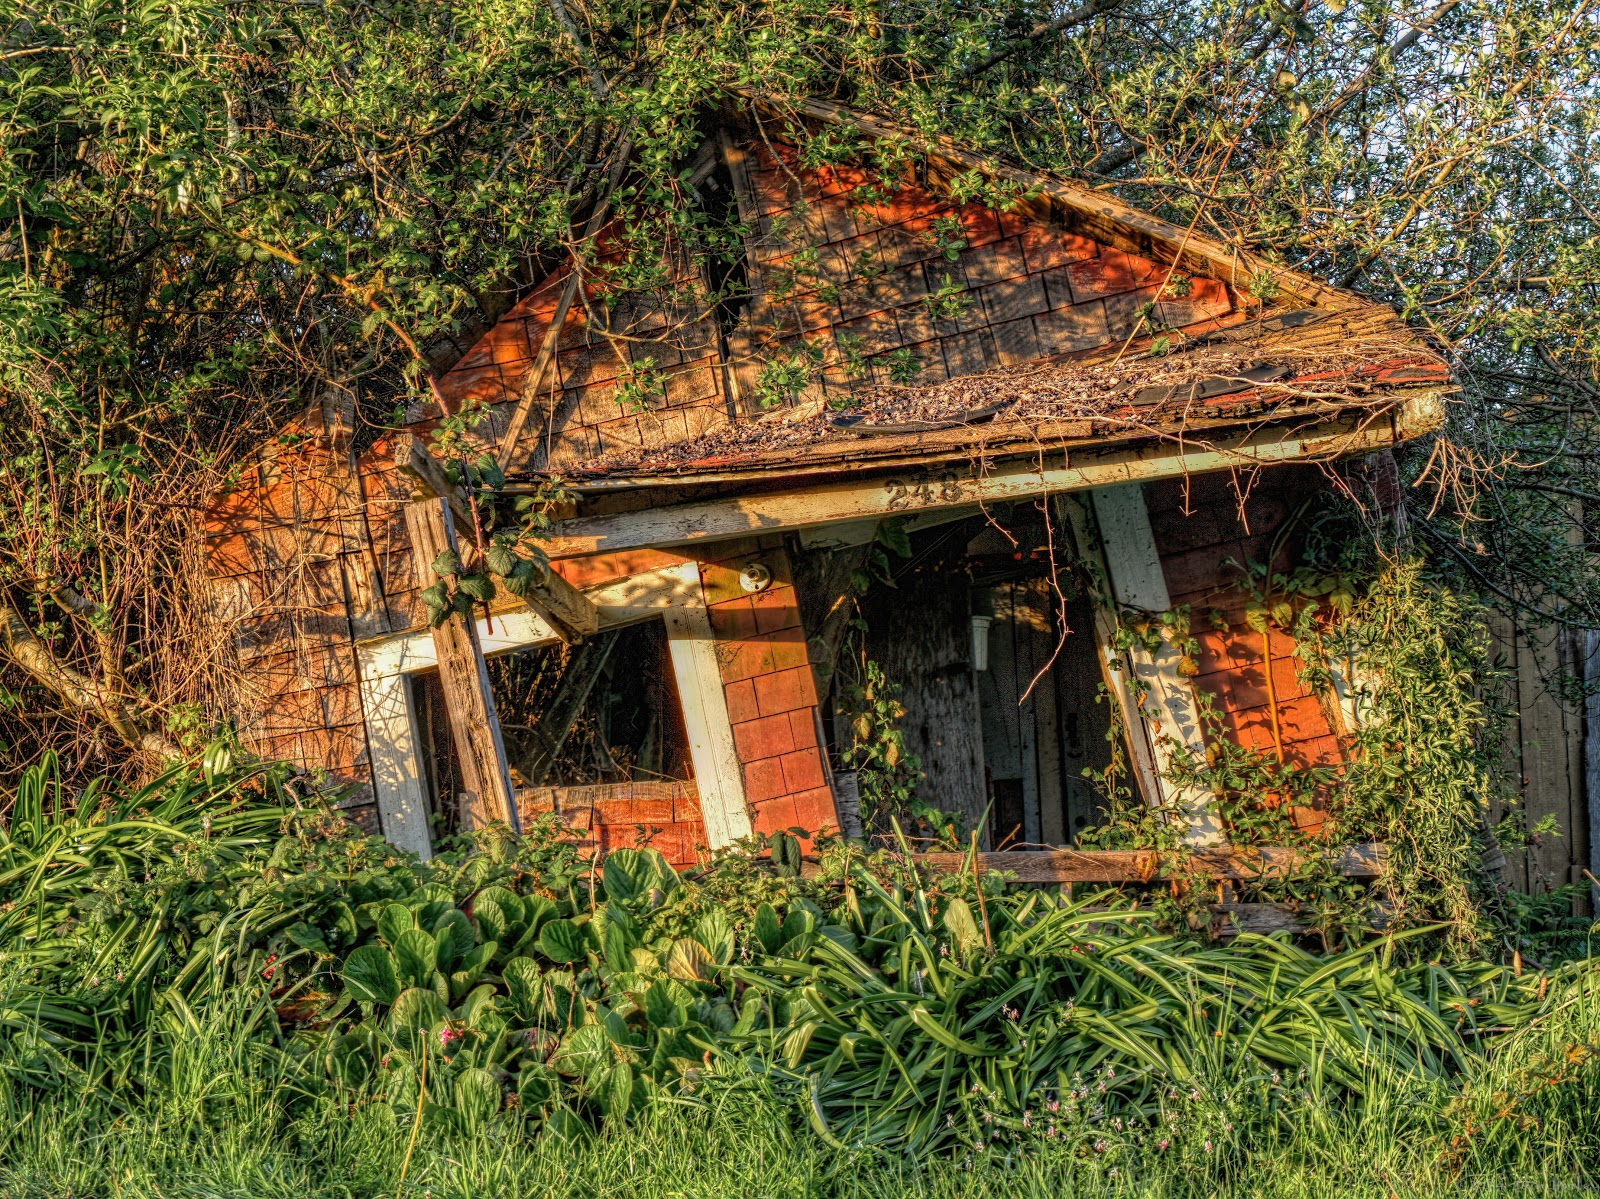 Overgrown dilapidated house